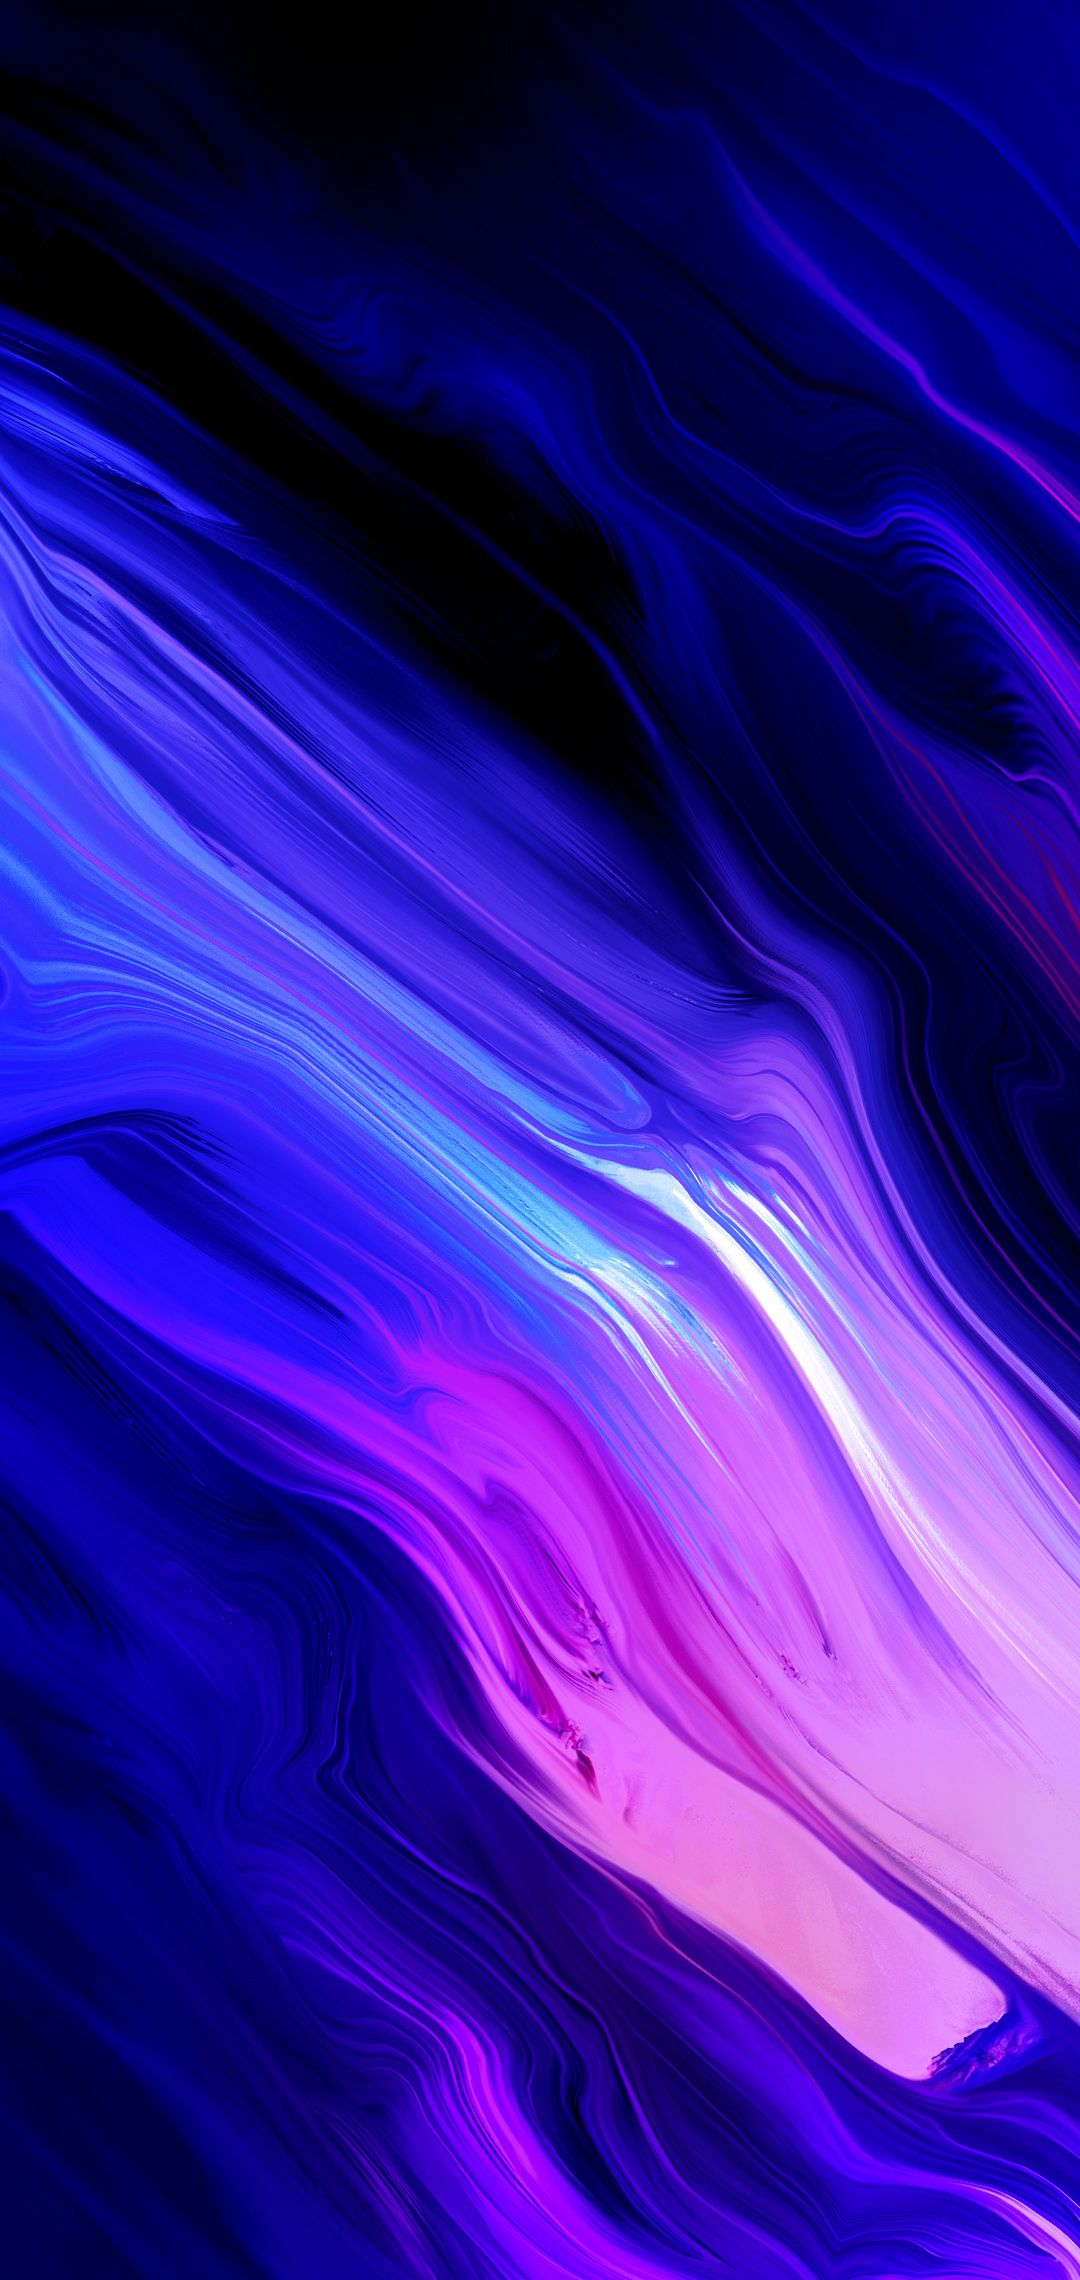 Huawei Nova 5 Wallpaper Ytechb Exclusive Huawei Wallpapers Live Wallpaper Iphone Original Iphone Wallpaper